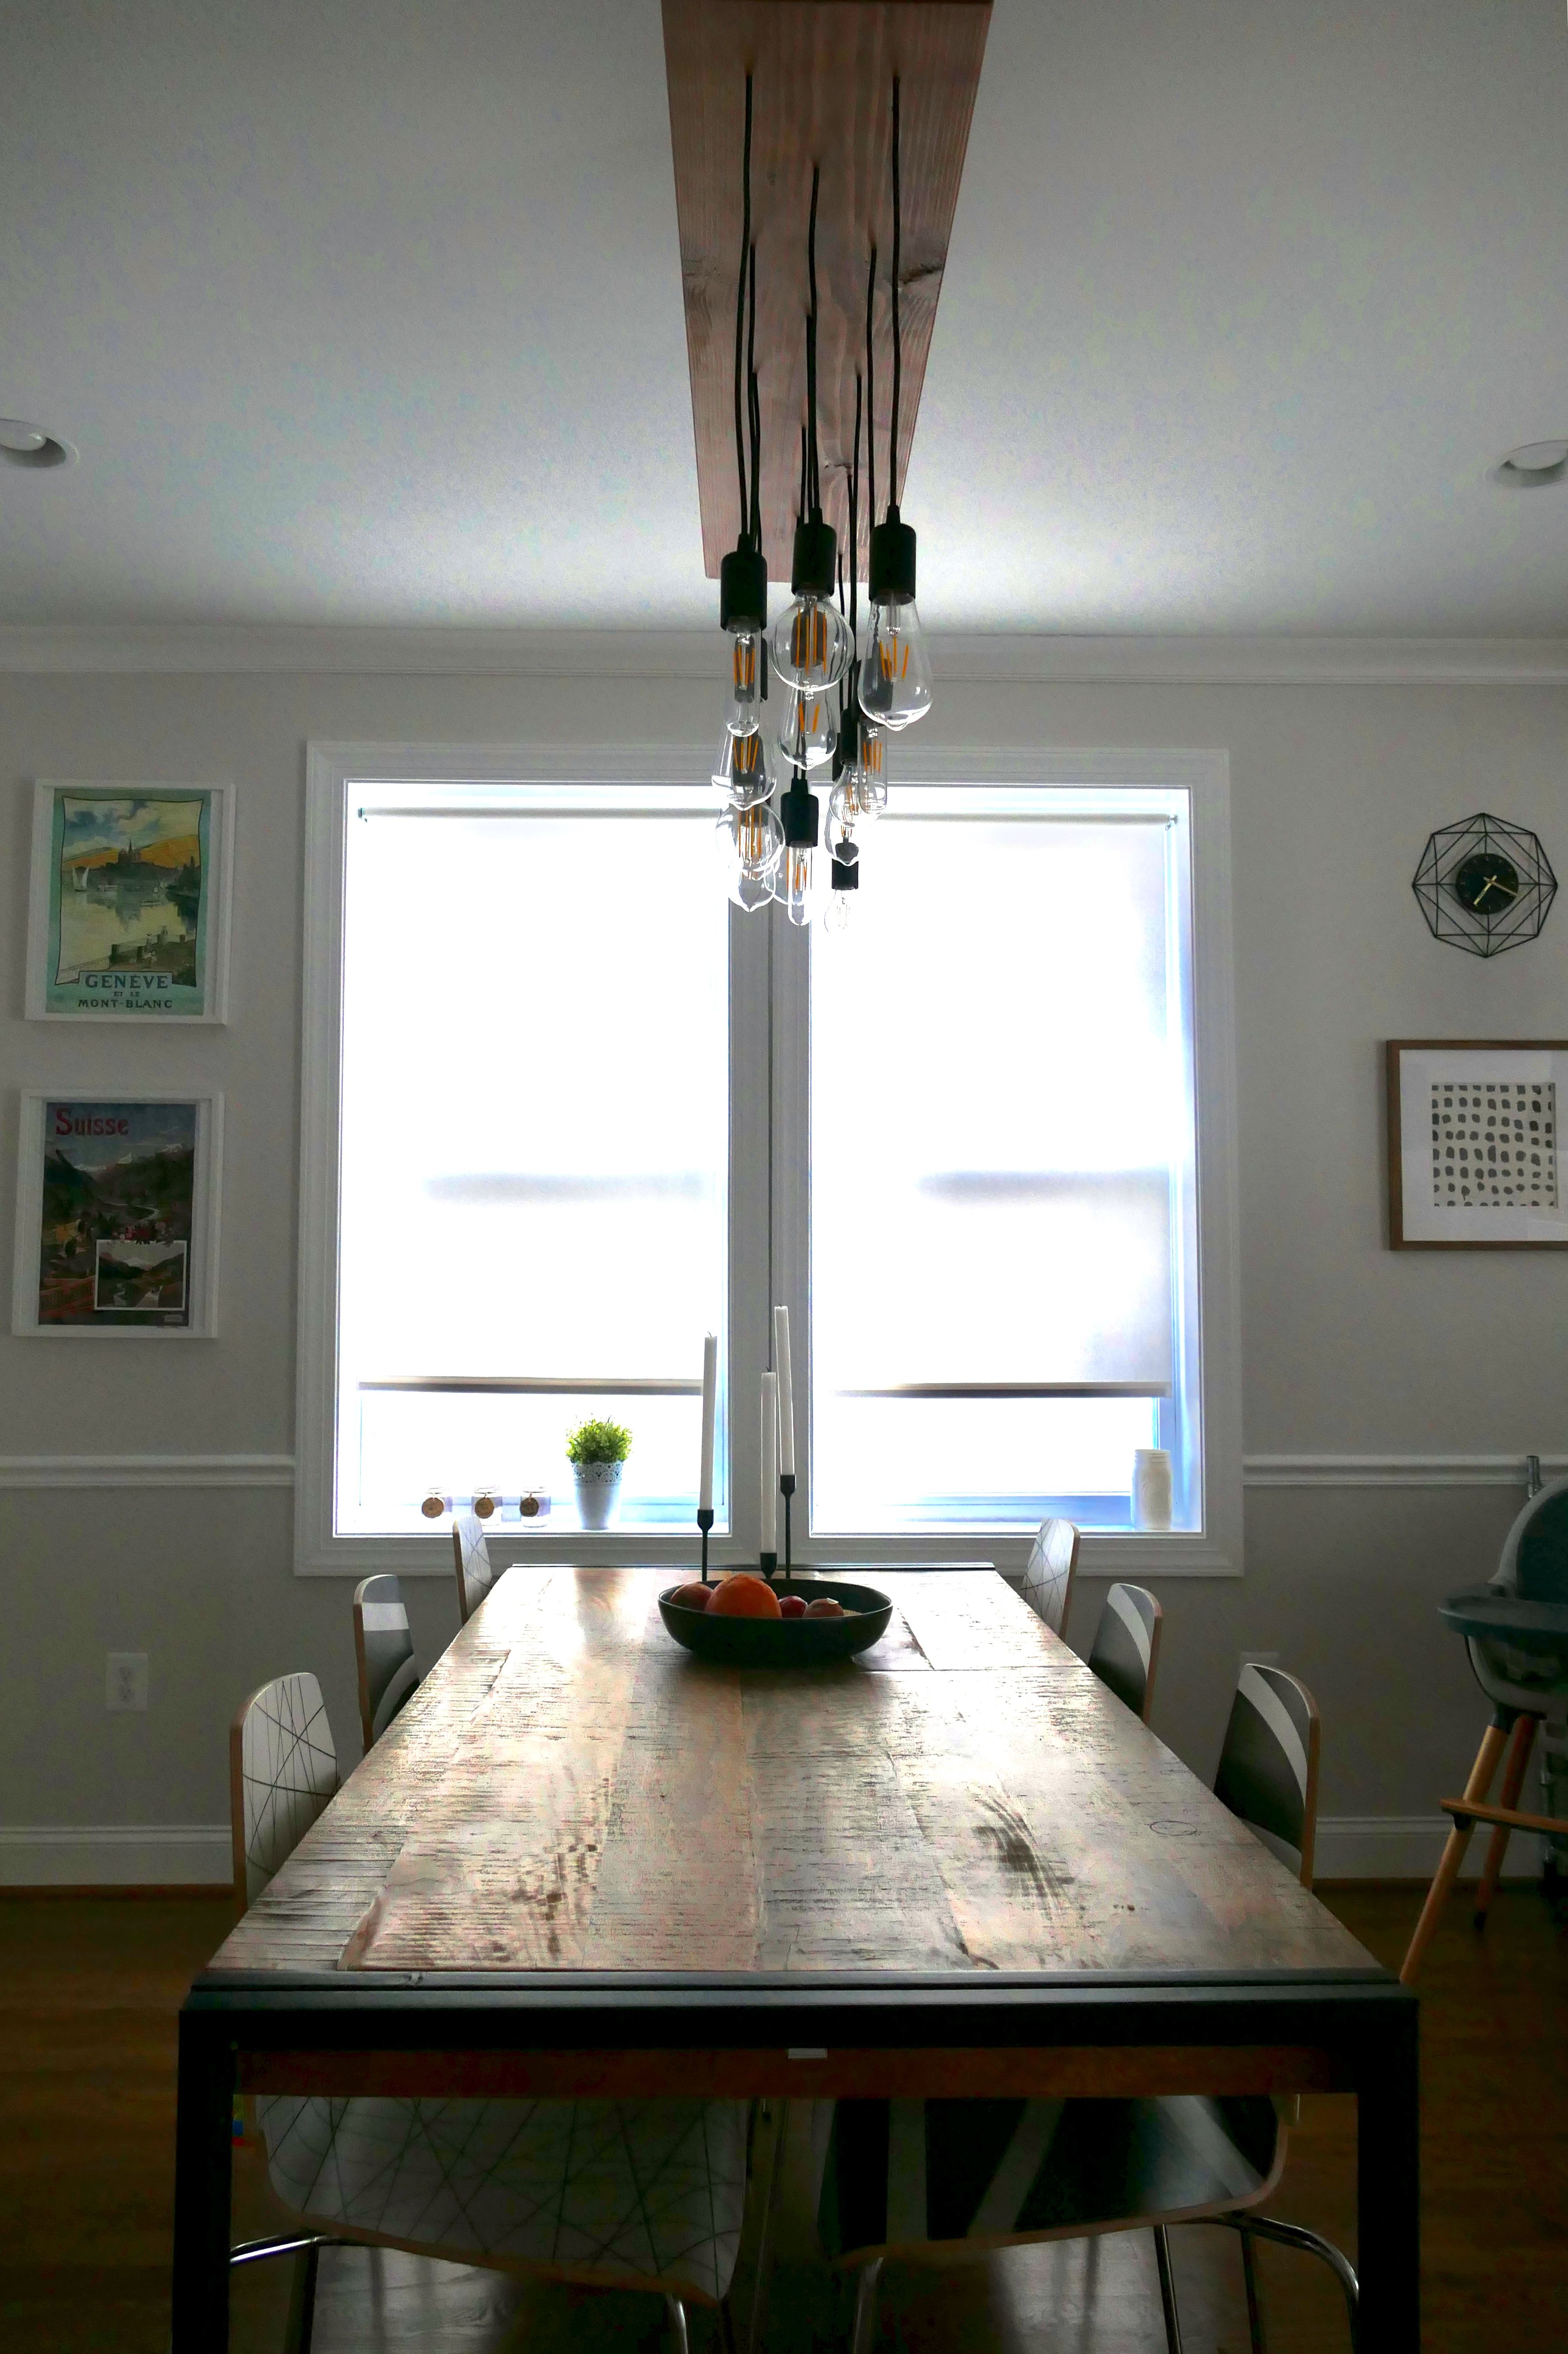 West Elm Dining Room Table And DIY Edison Light Bulbs Ceiling Pendent